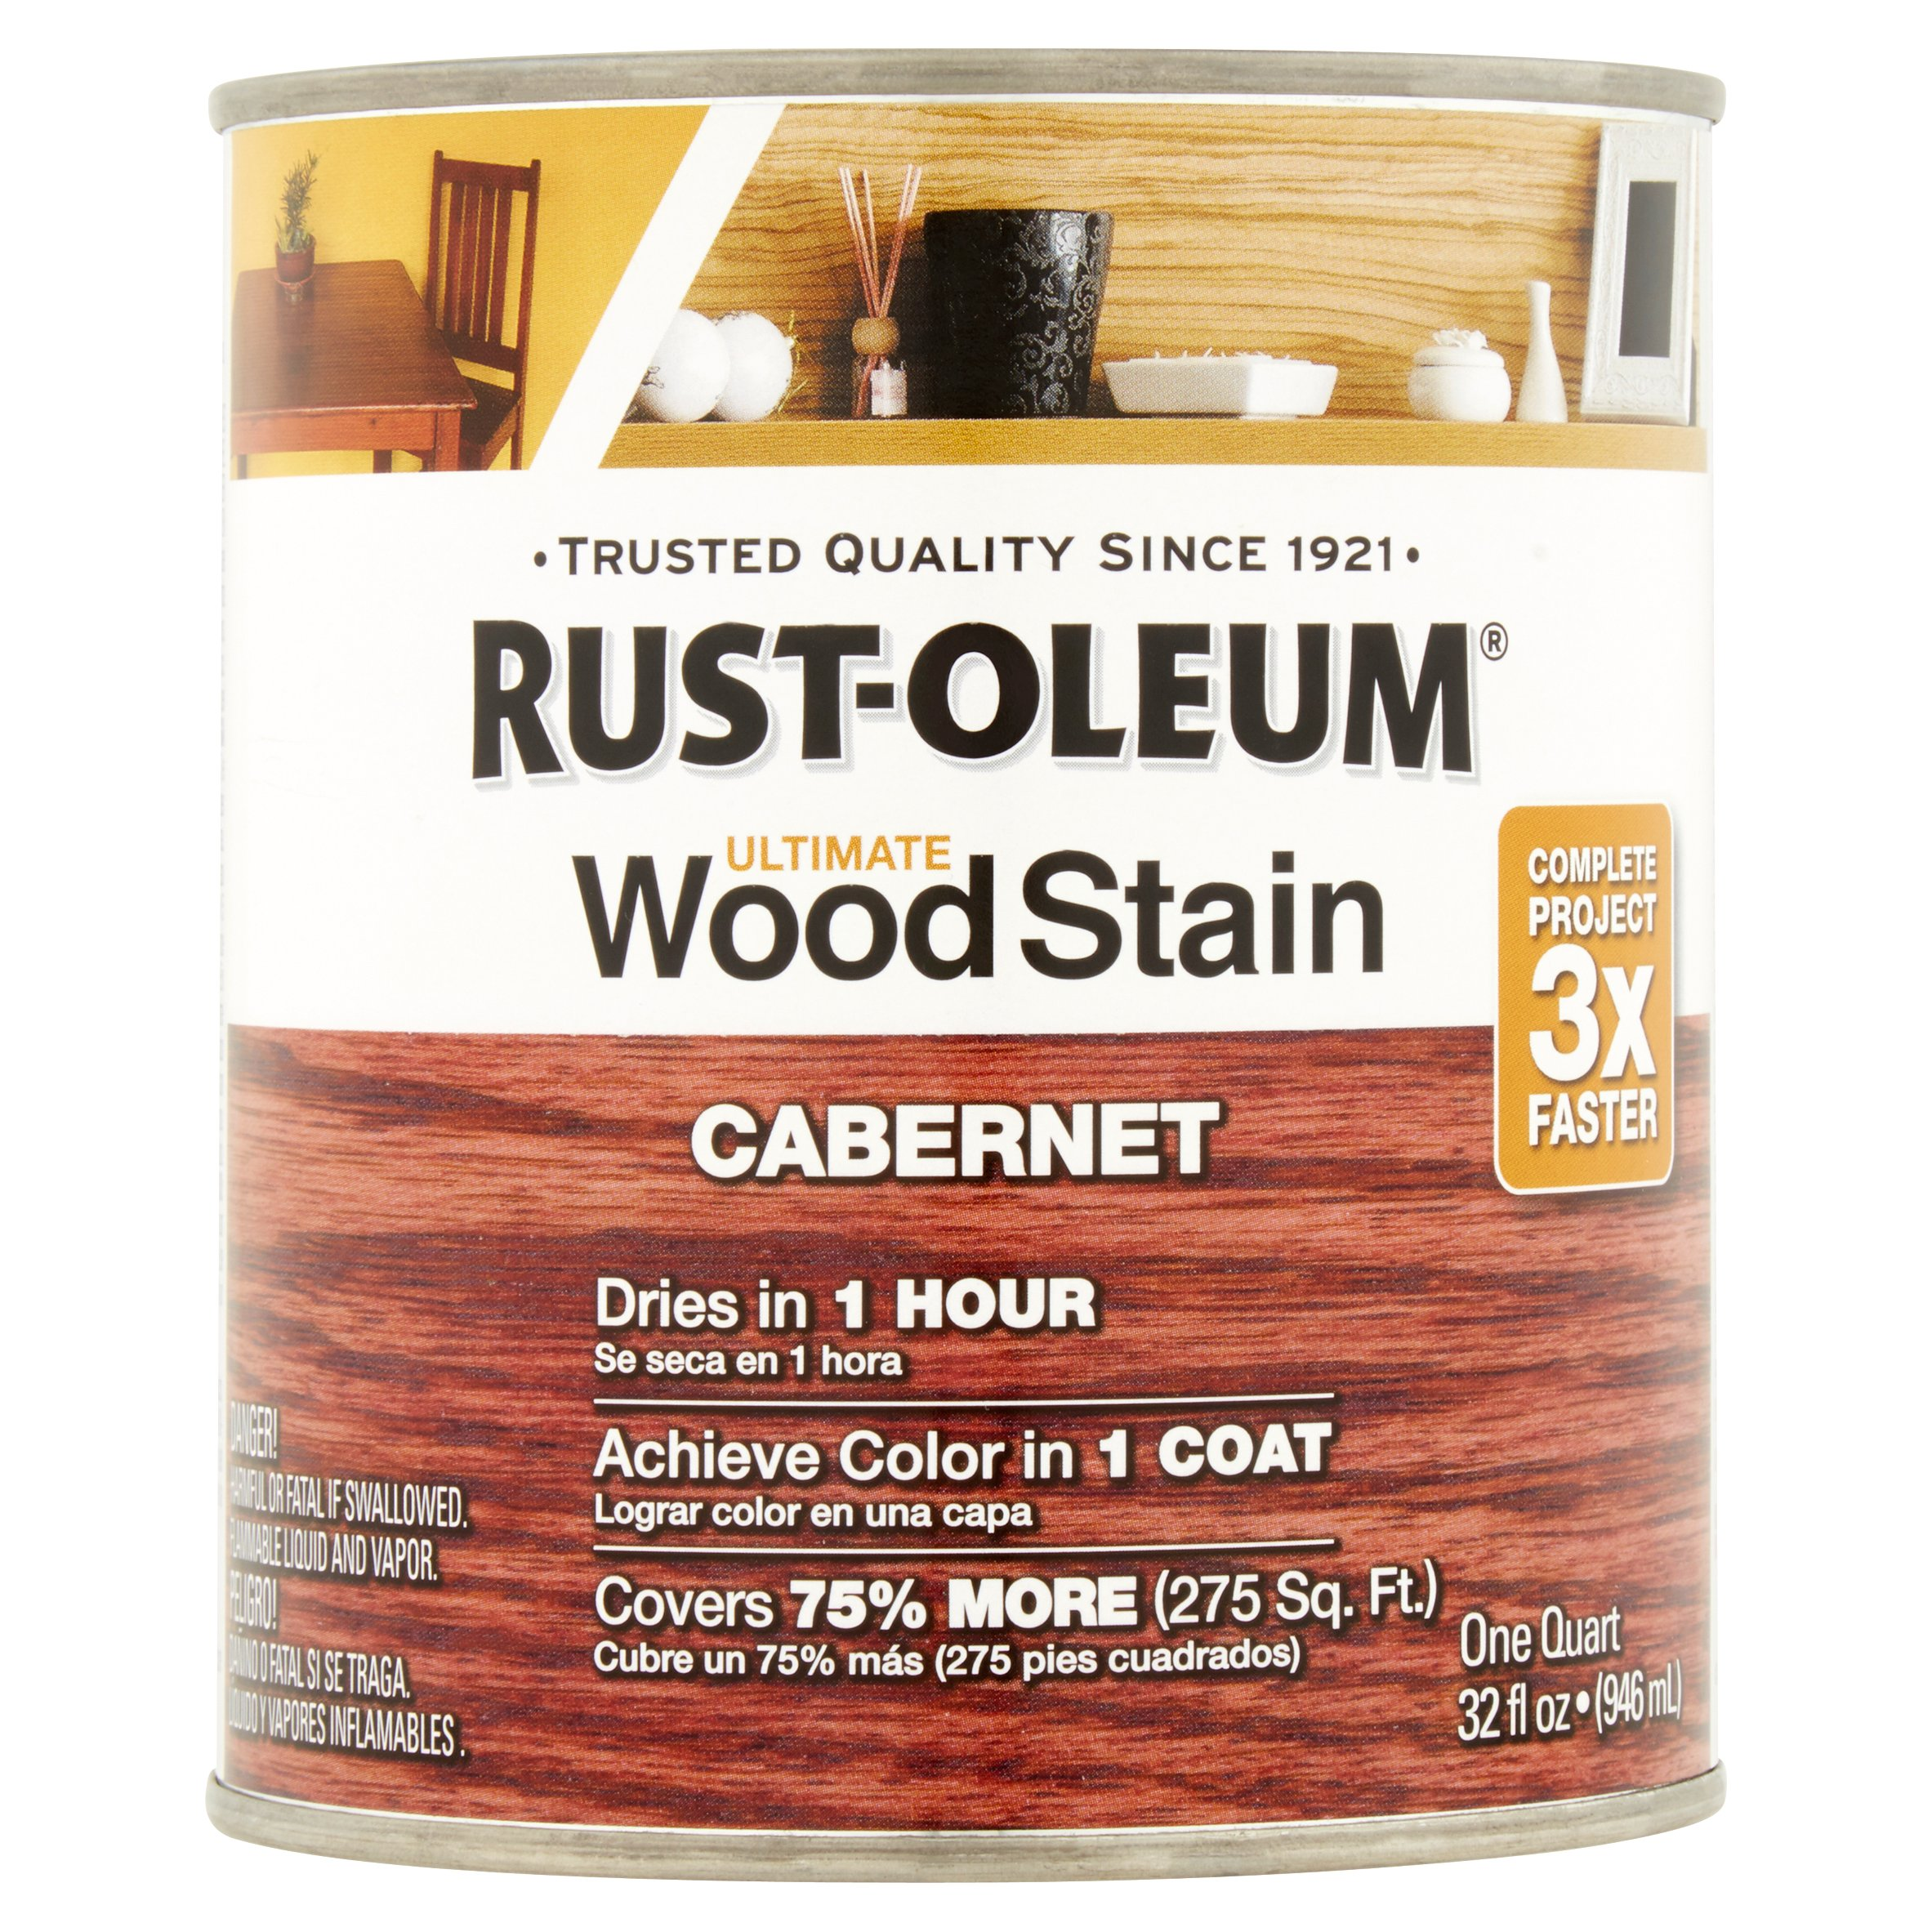 Rust-Oleum Cabernet Ultimate Wood Stain, 32 fl oz